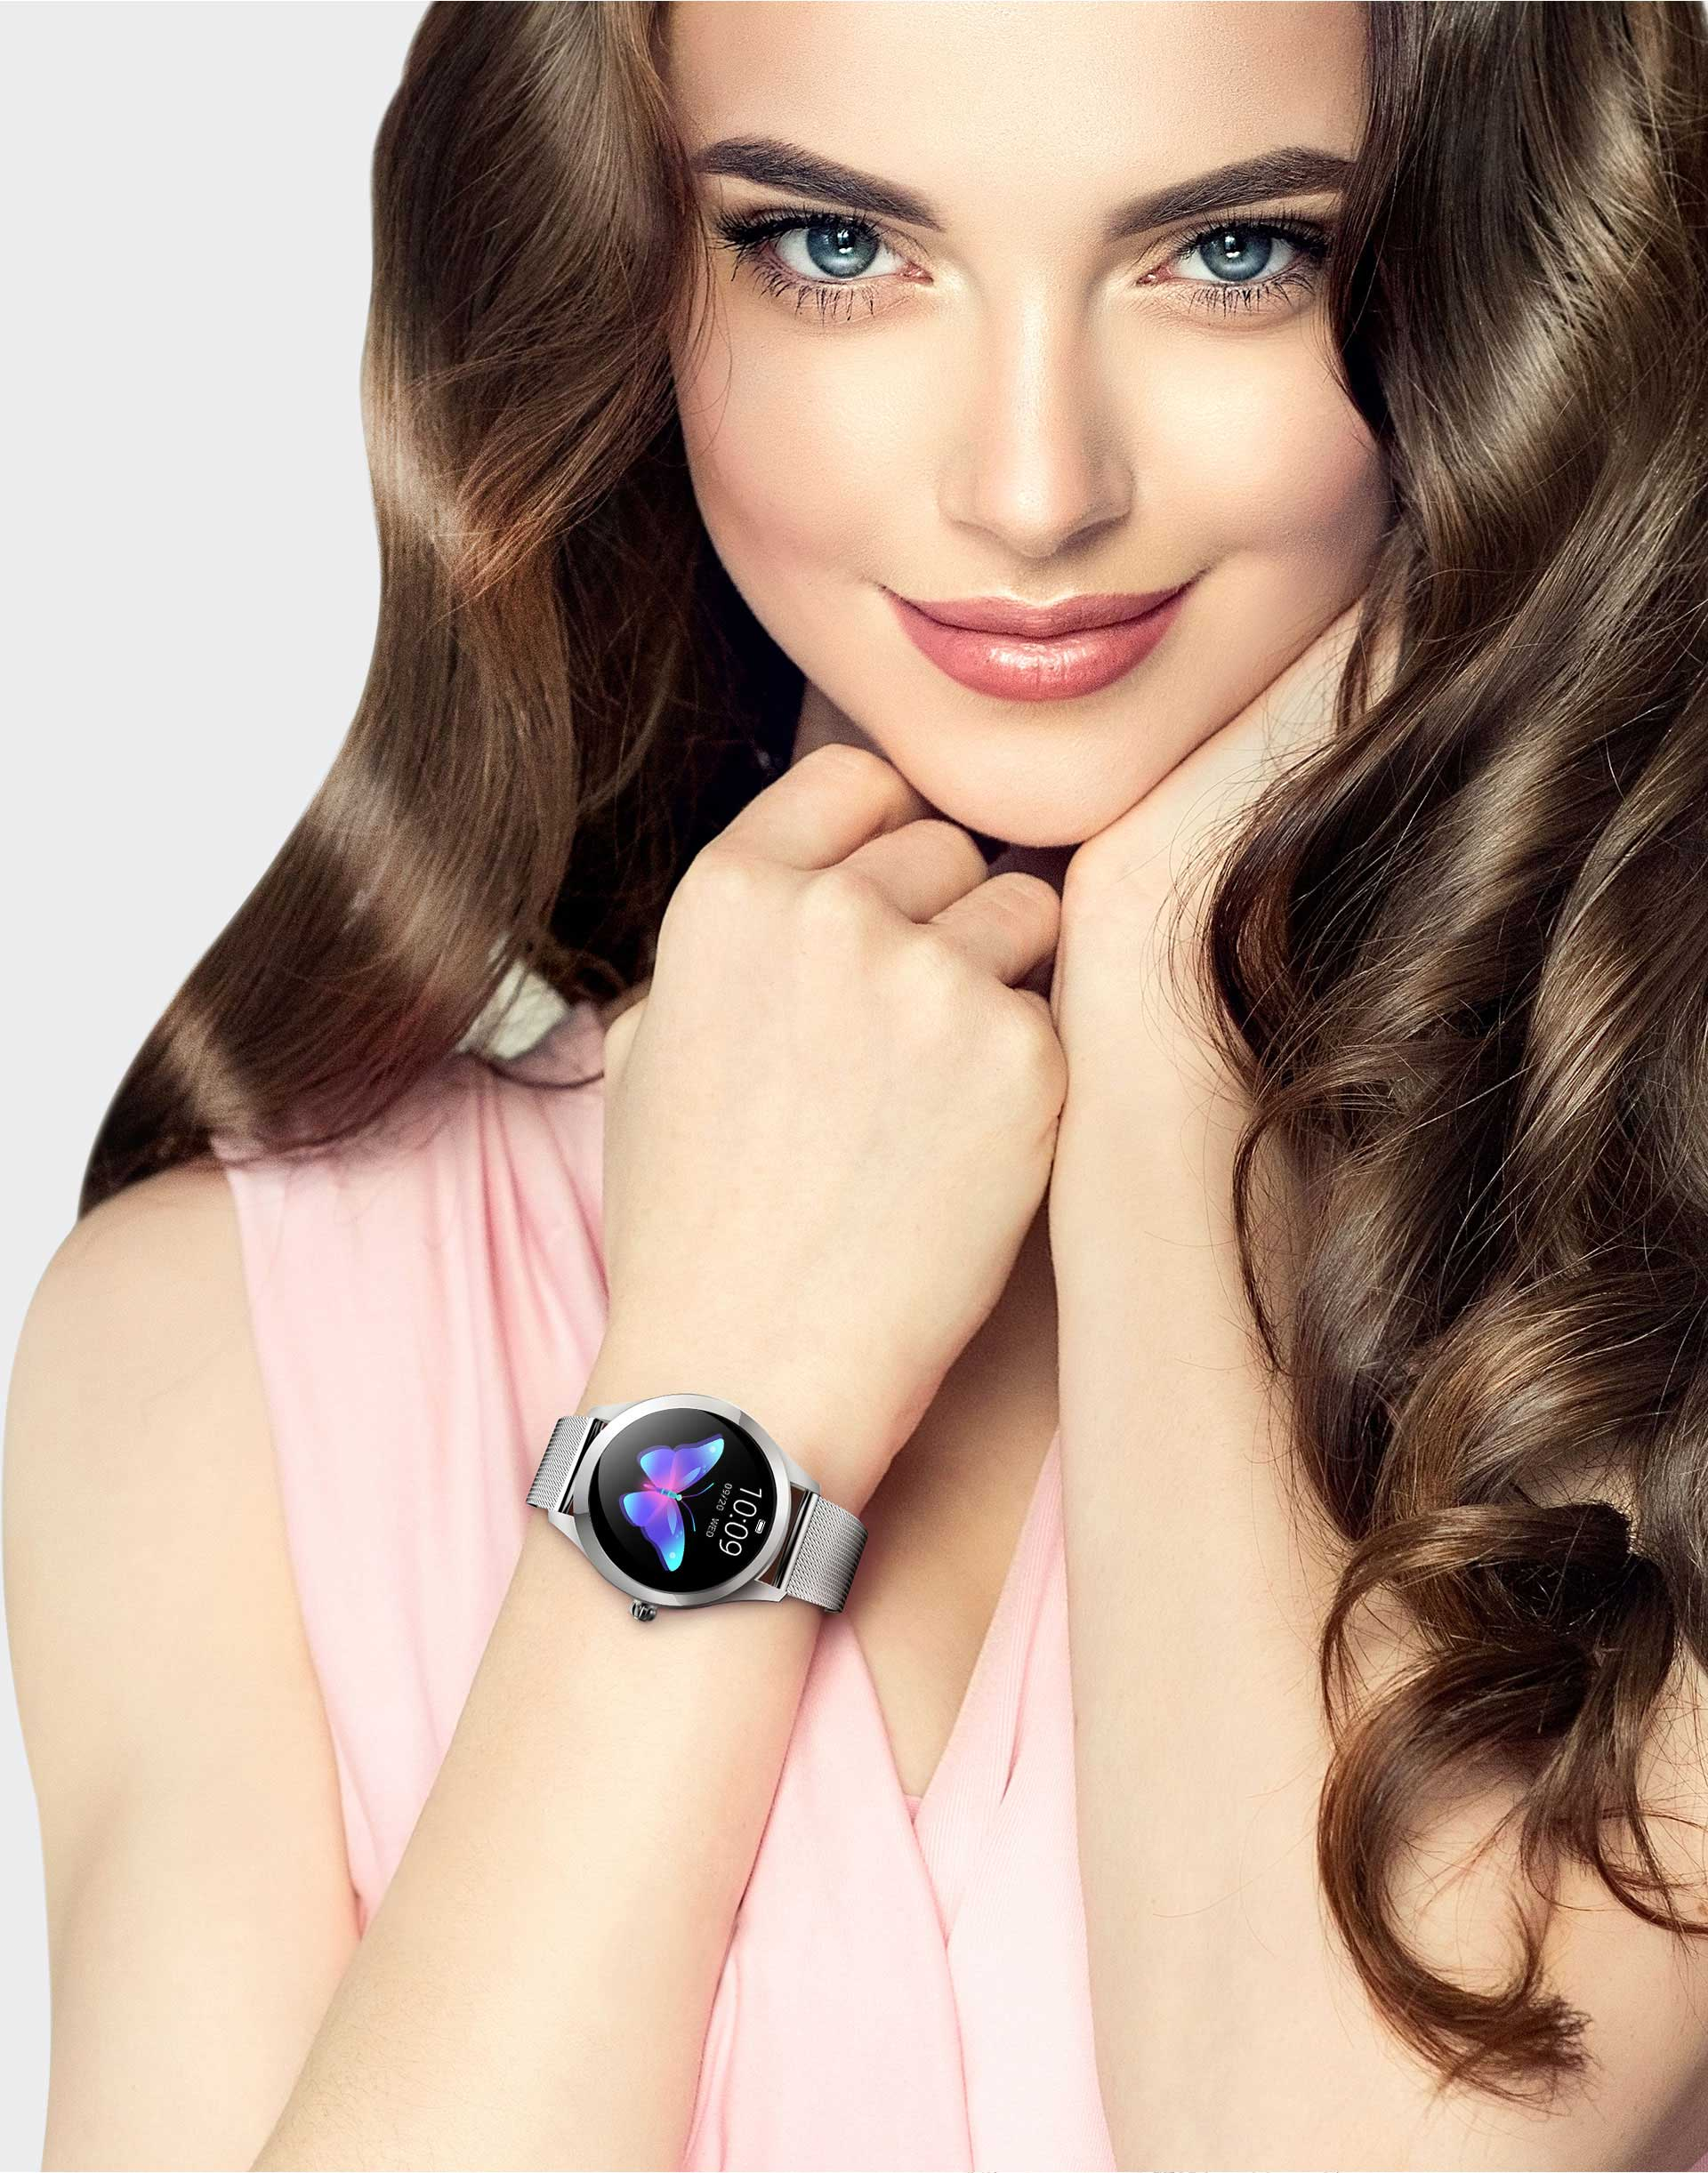 Women's Smartwatches